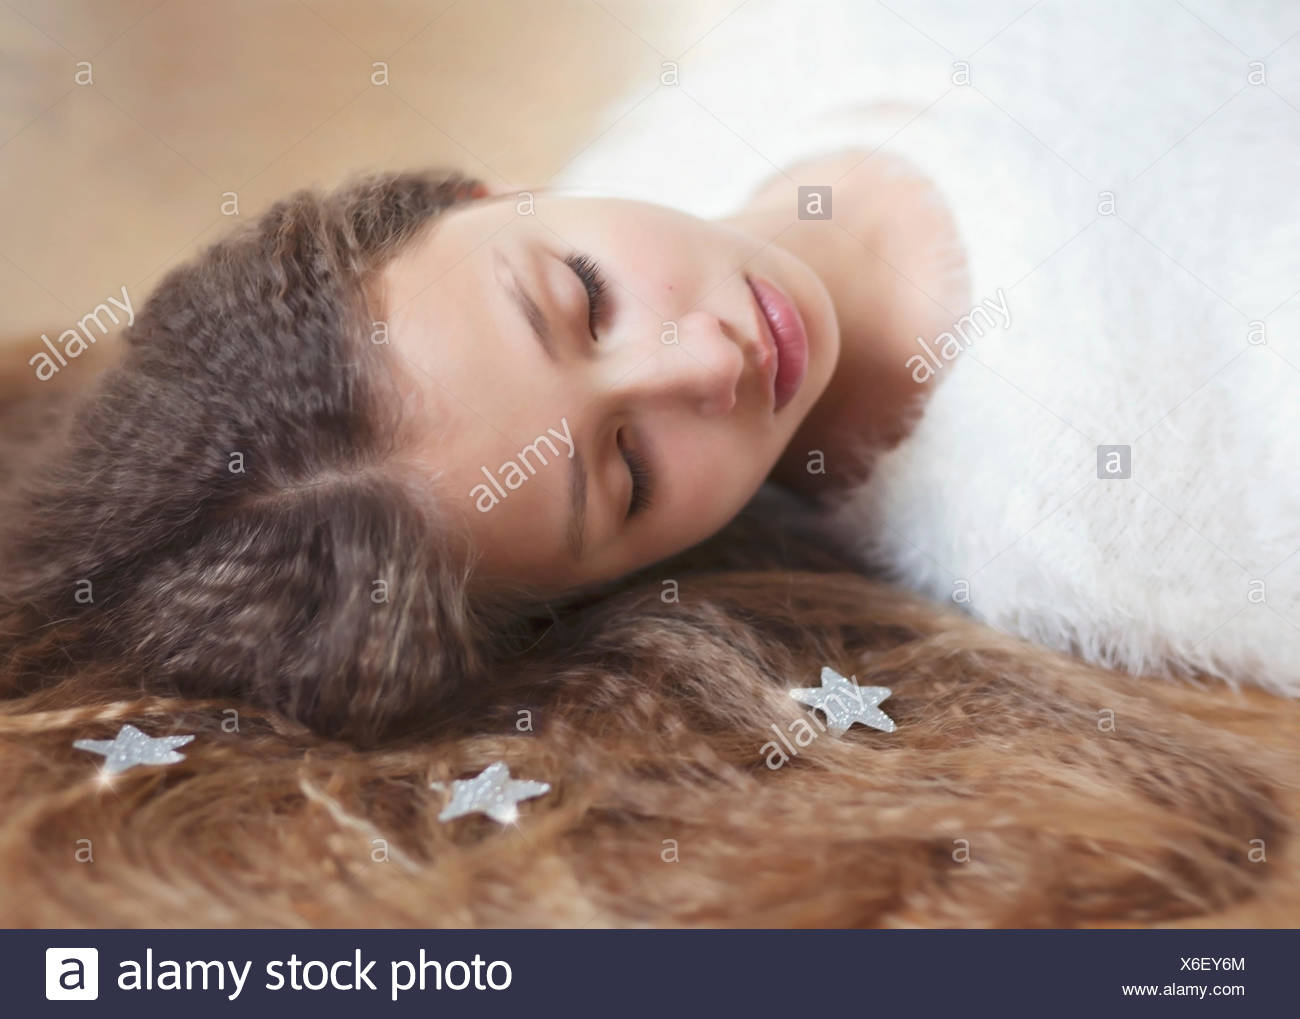 Portrait of girl (12-13) with long hair lying down - Stock Image